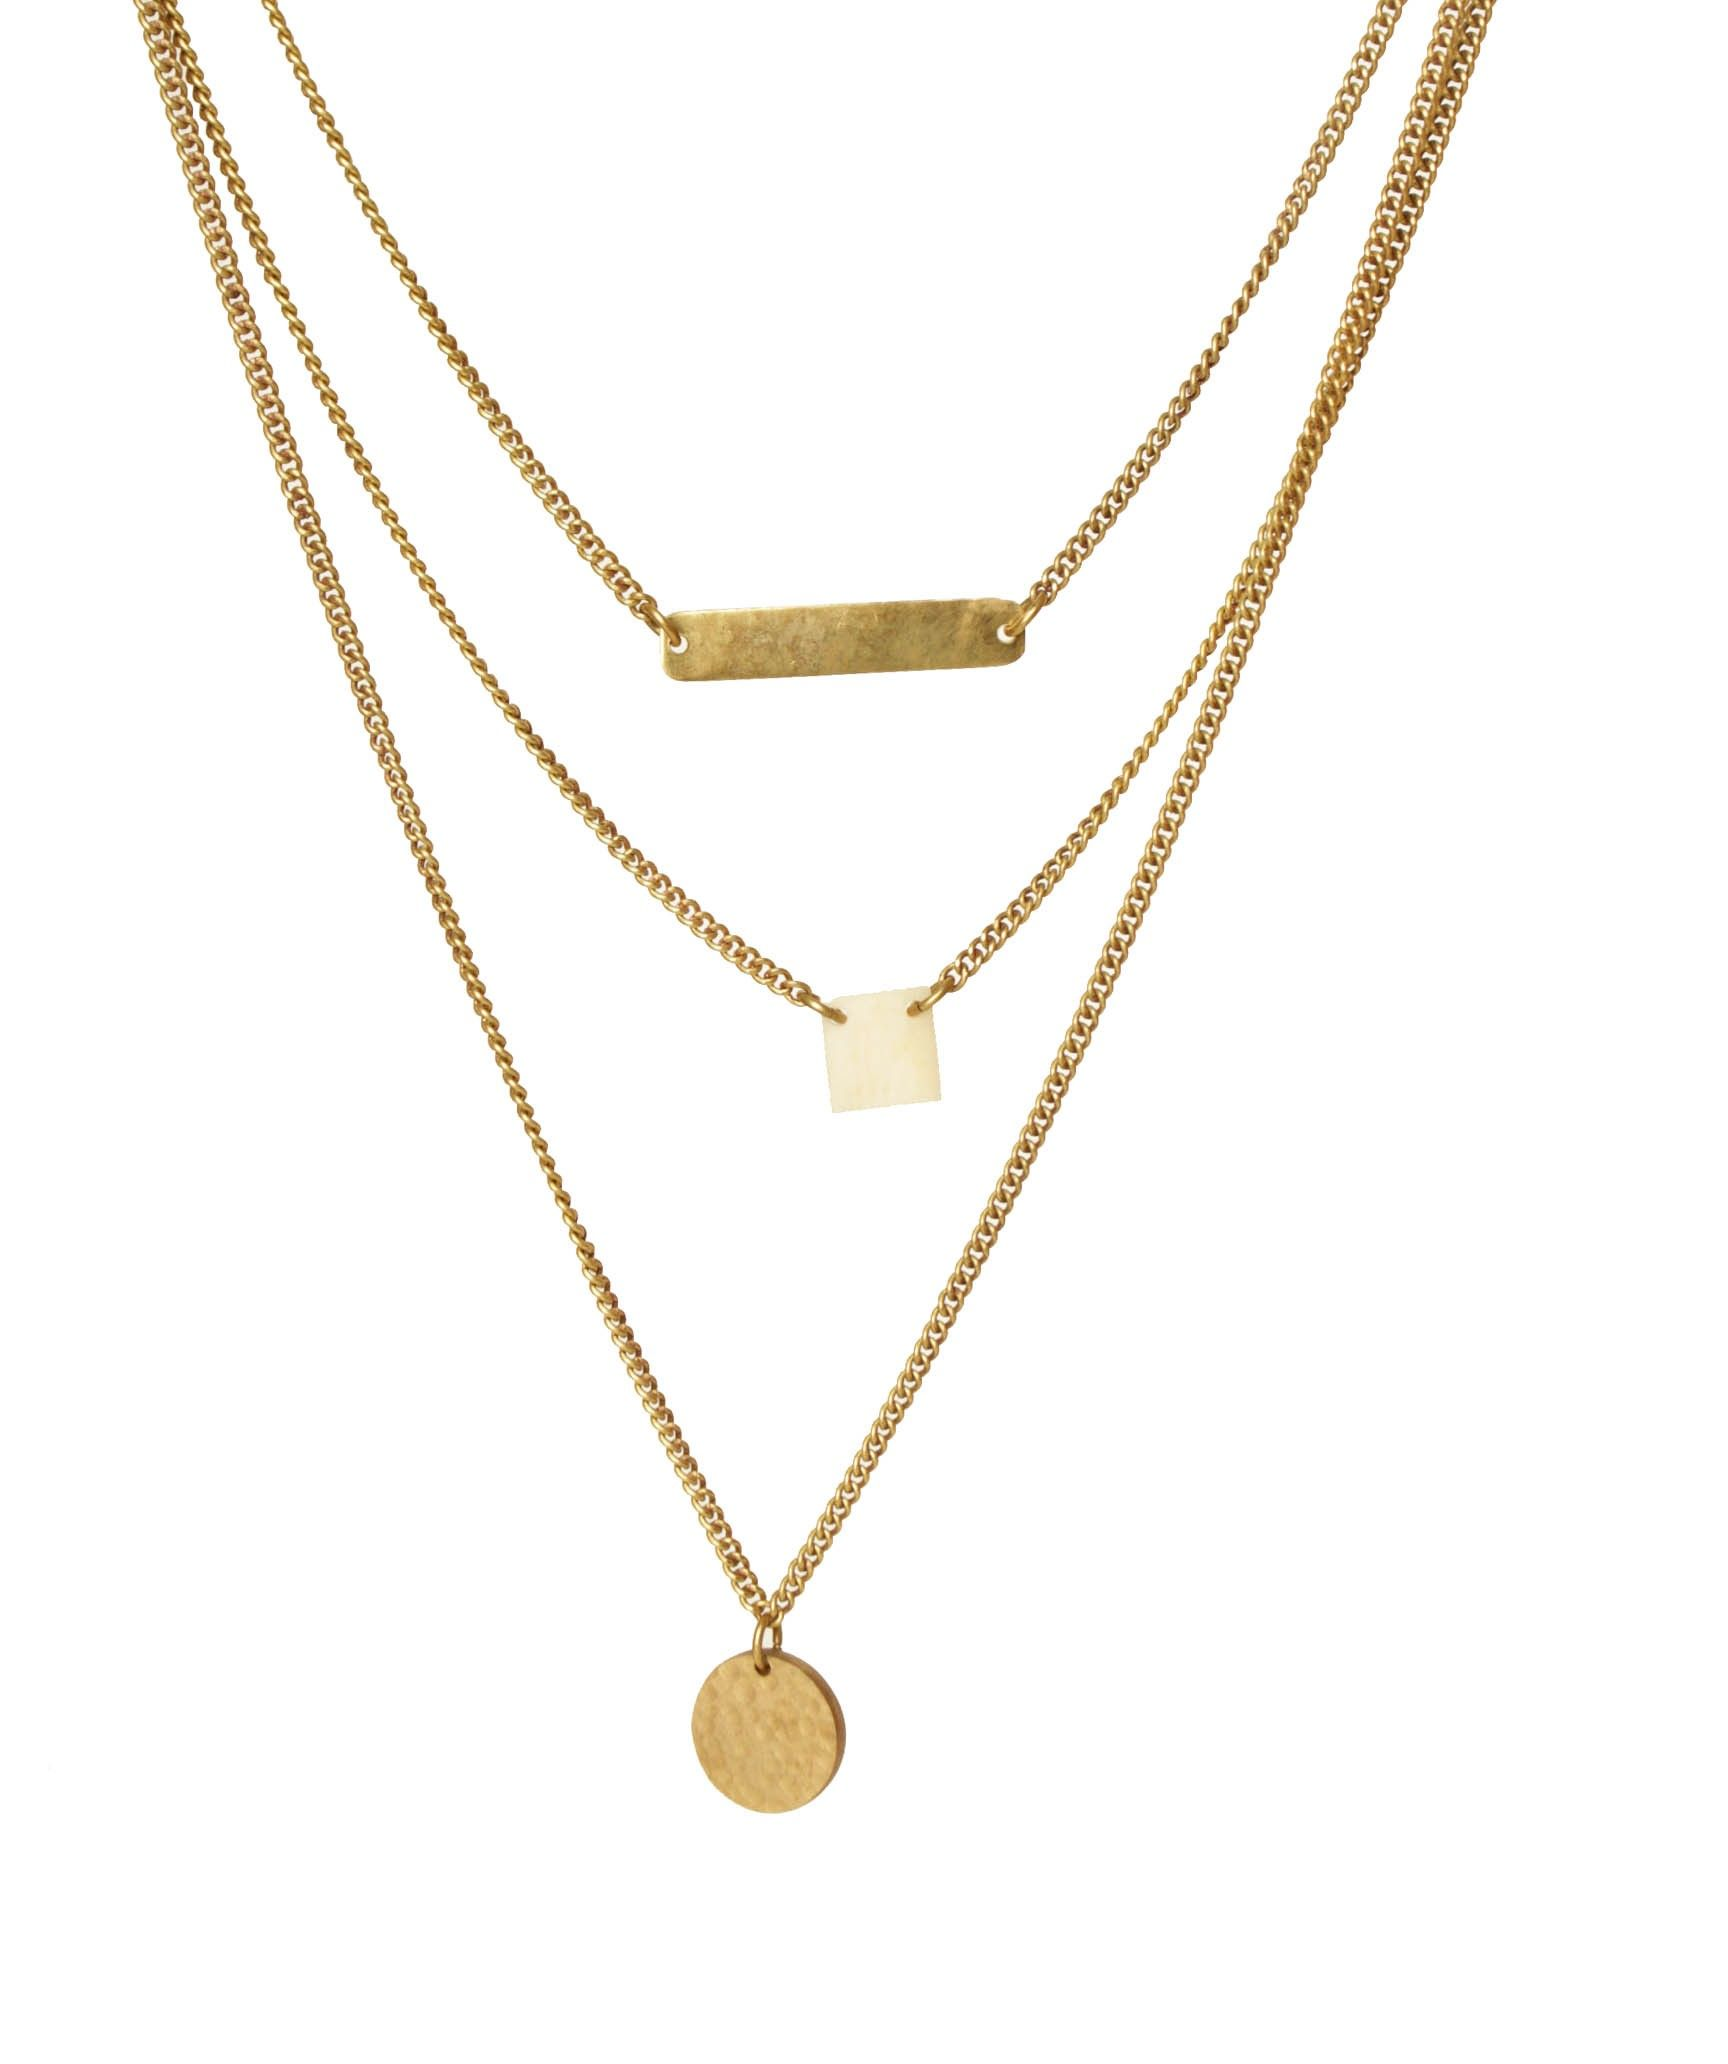 Dainty Trio Necklace - New In Made UK